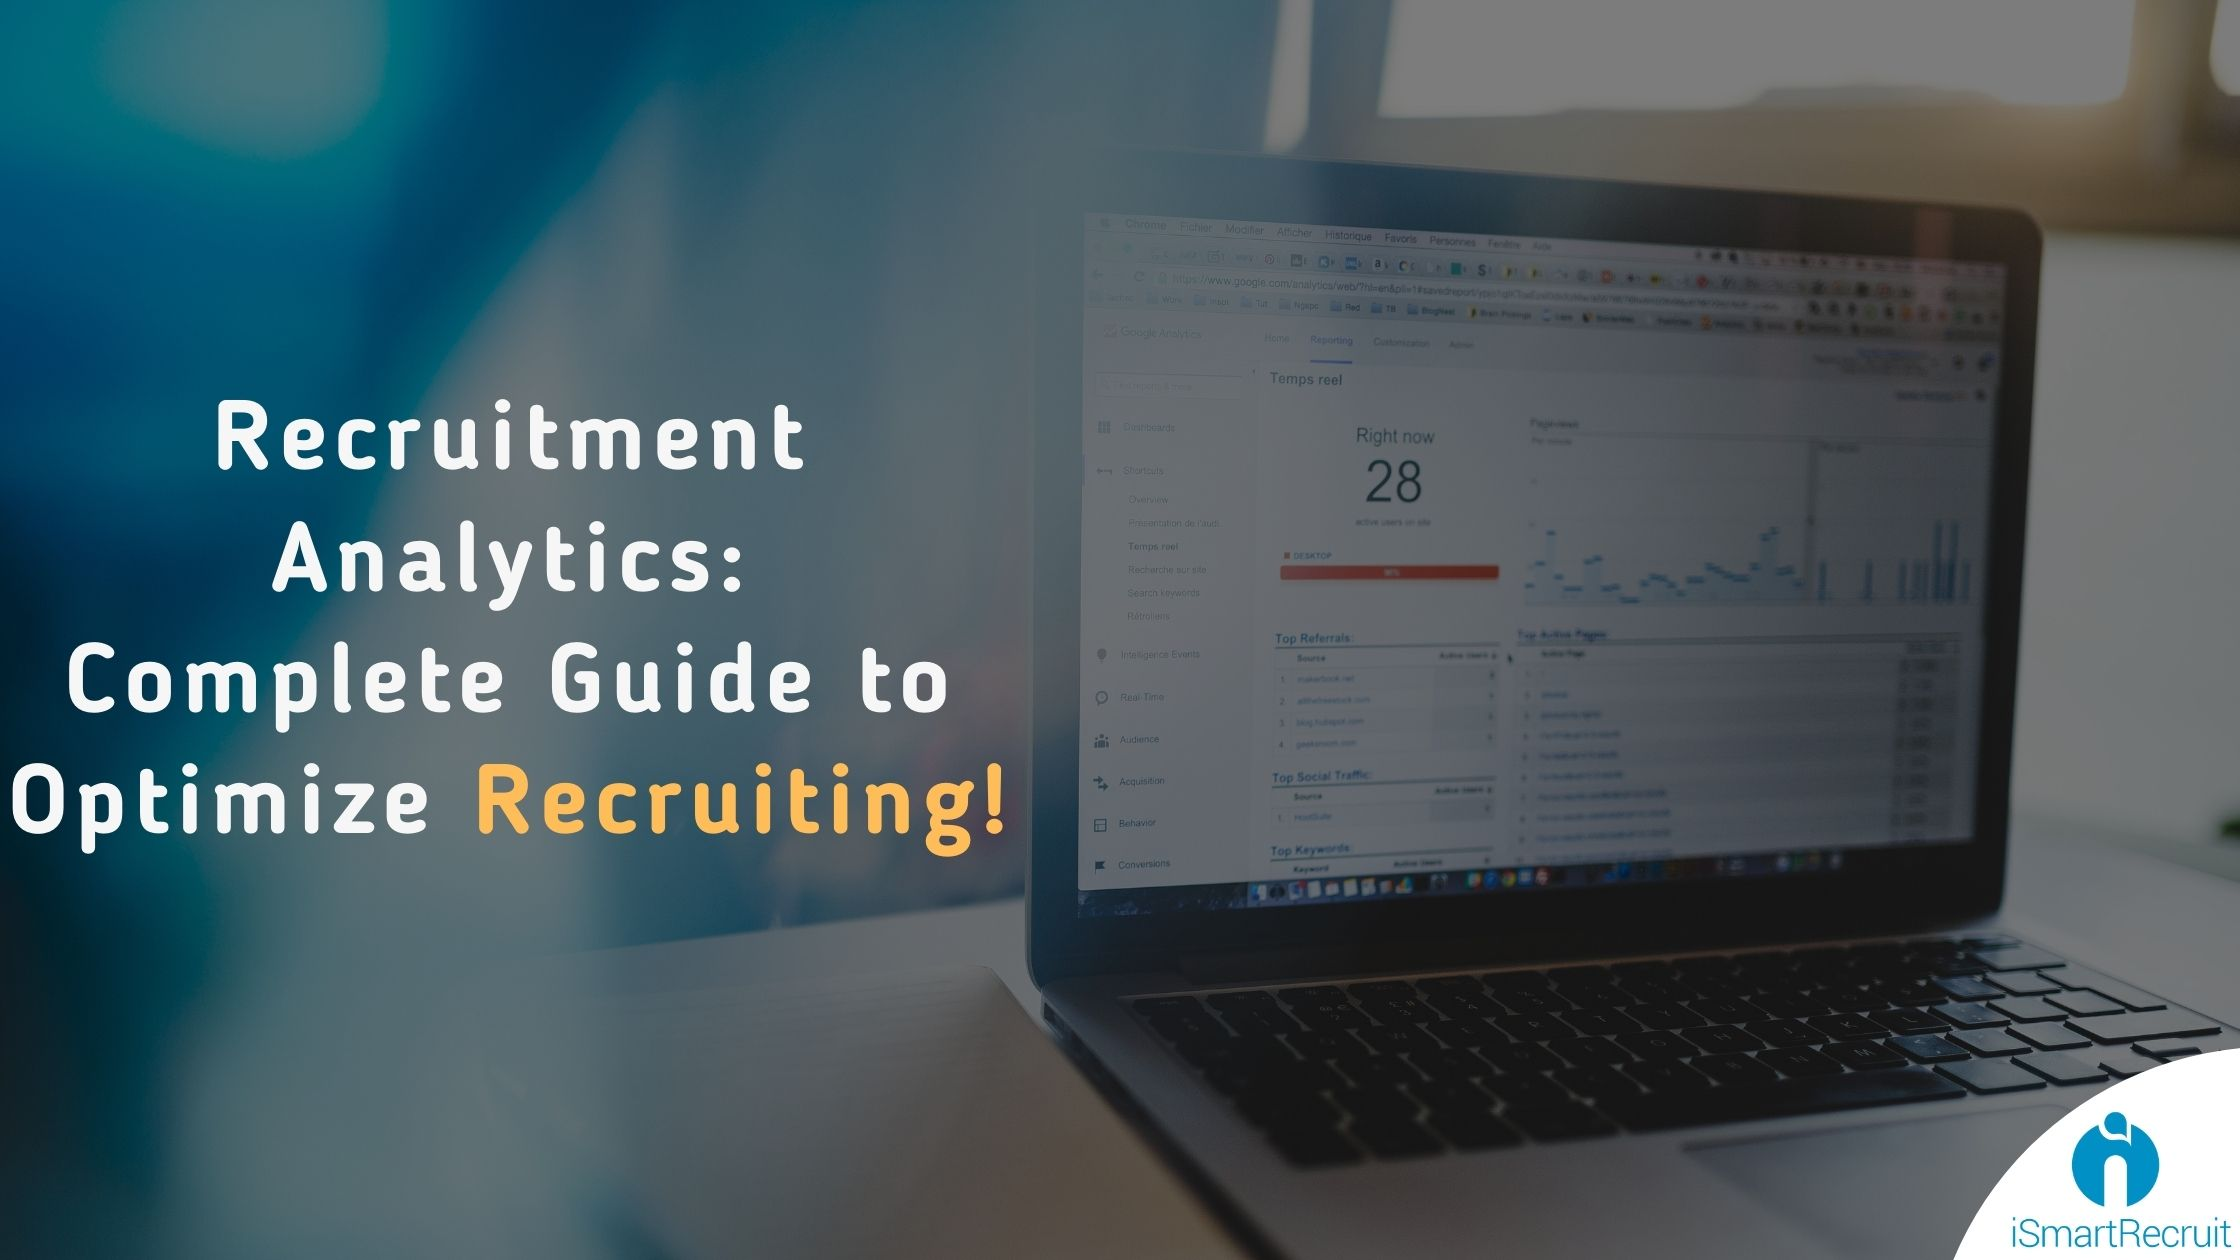 Recruitment Analytics: Complete Guide to Optimize Recruiting